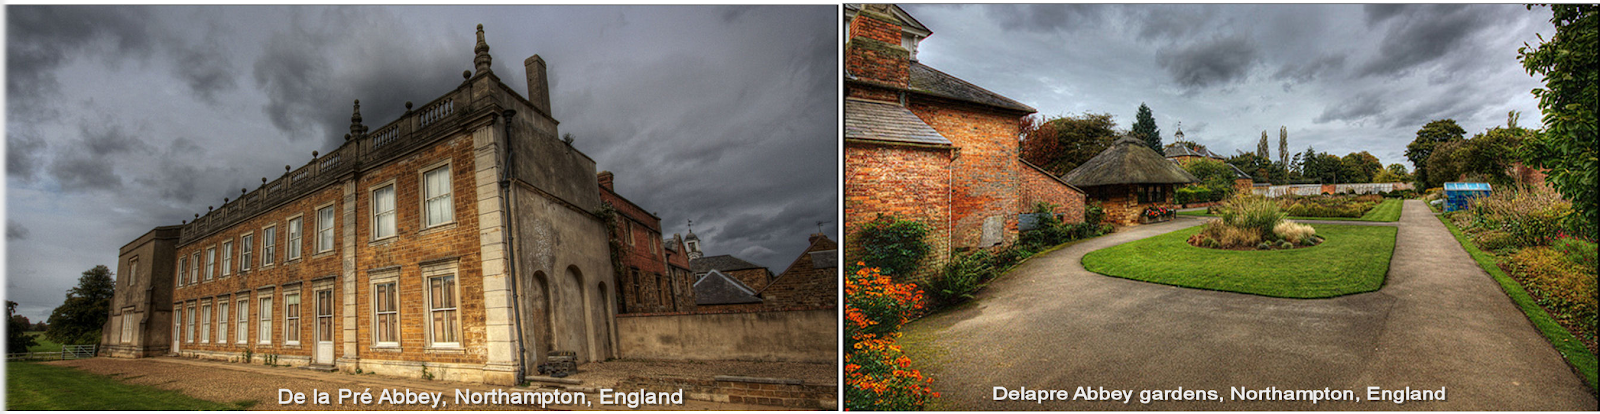 Delapre Abbey and Gardens, Northhampton, England.png